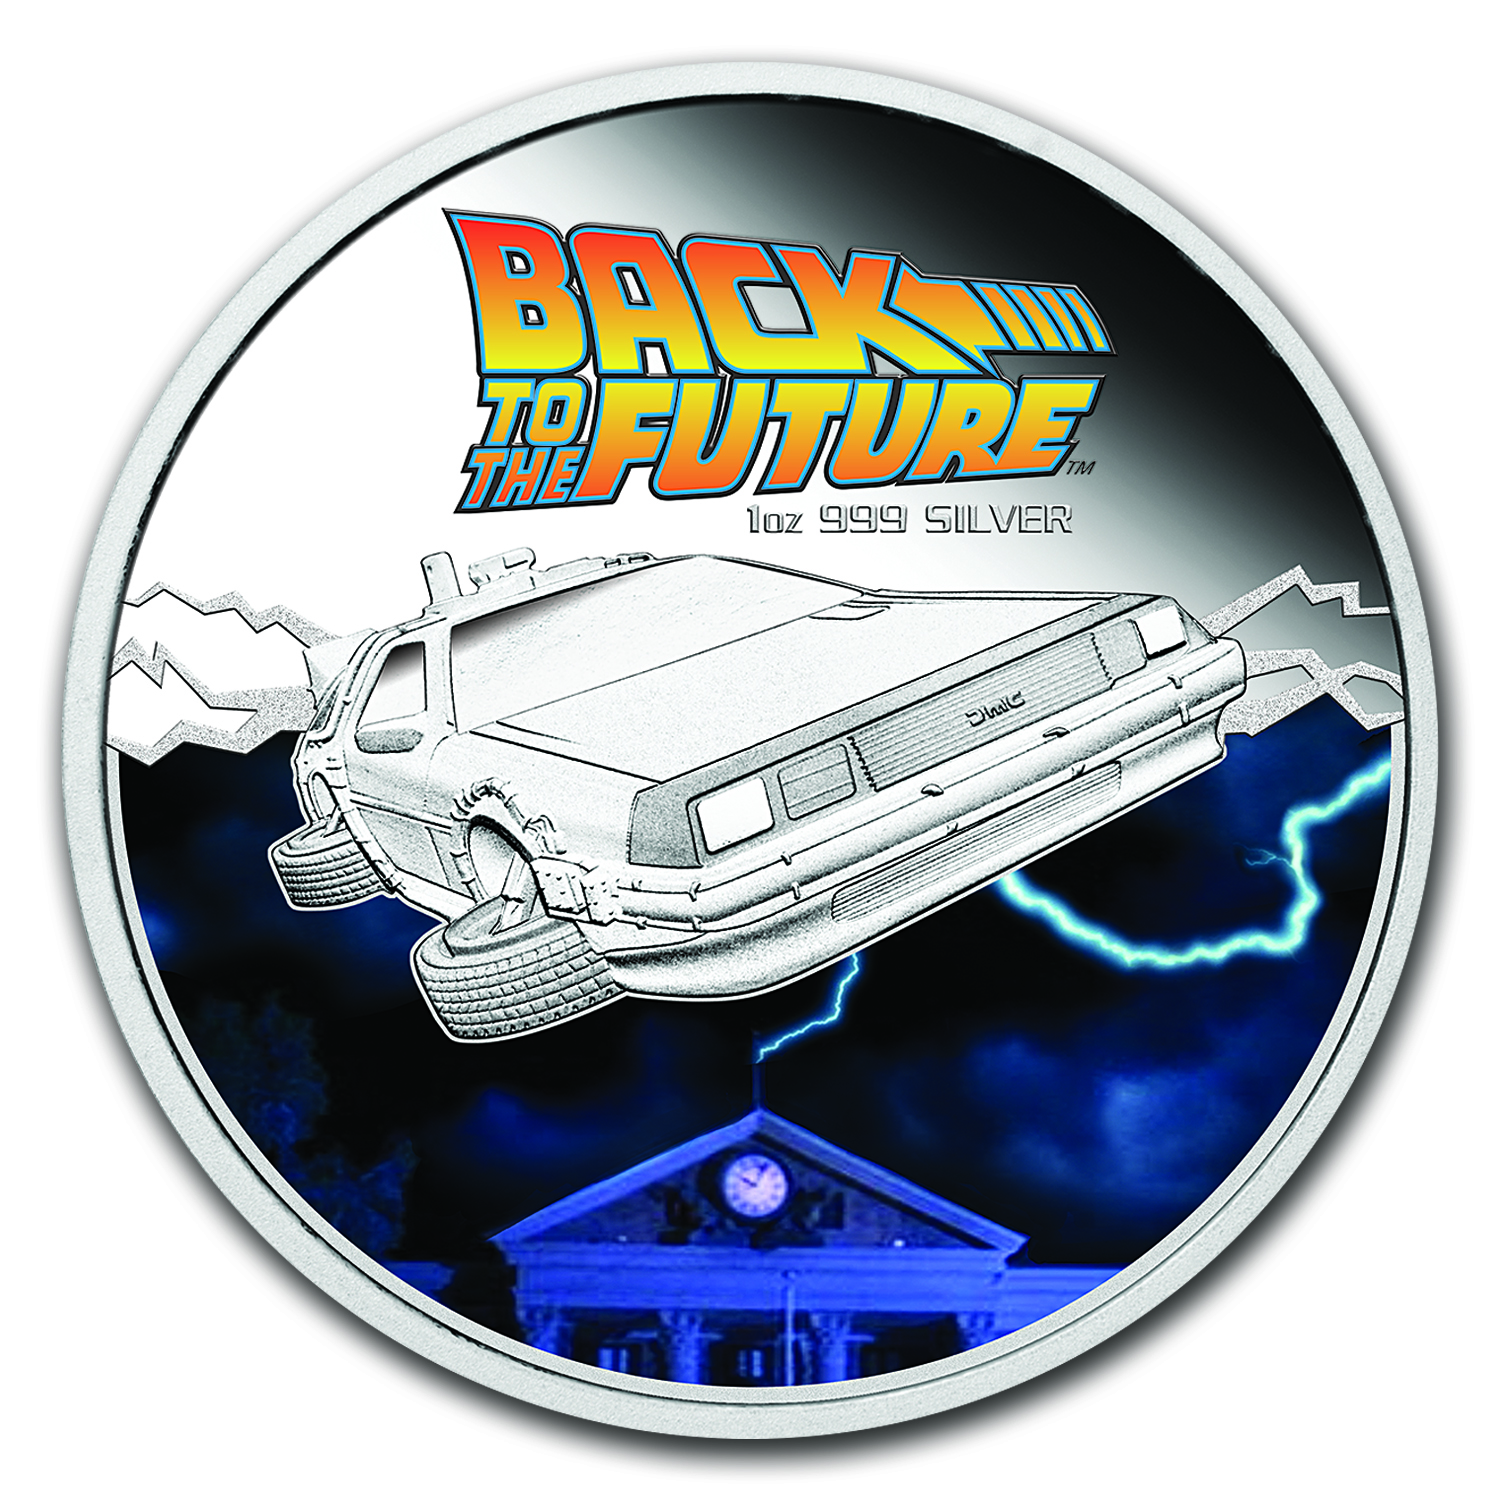 2015 Tuvalu 1 oz Silver Back to the Future Proof